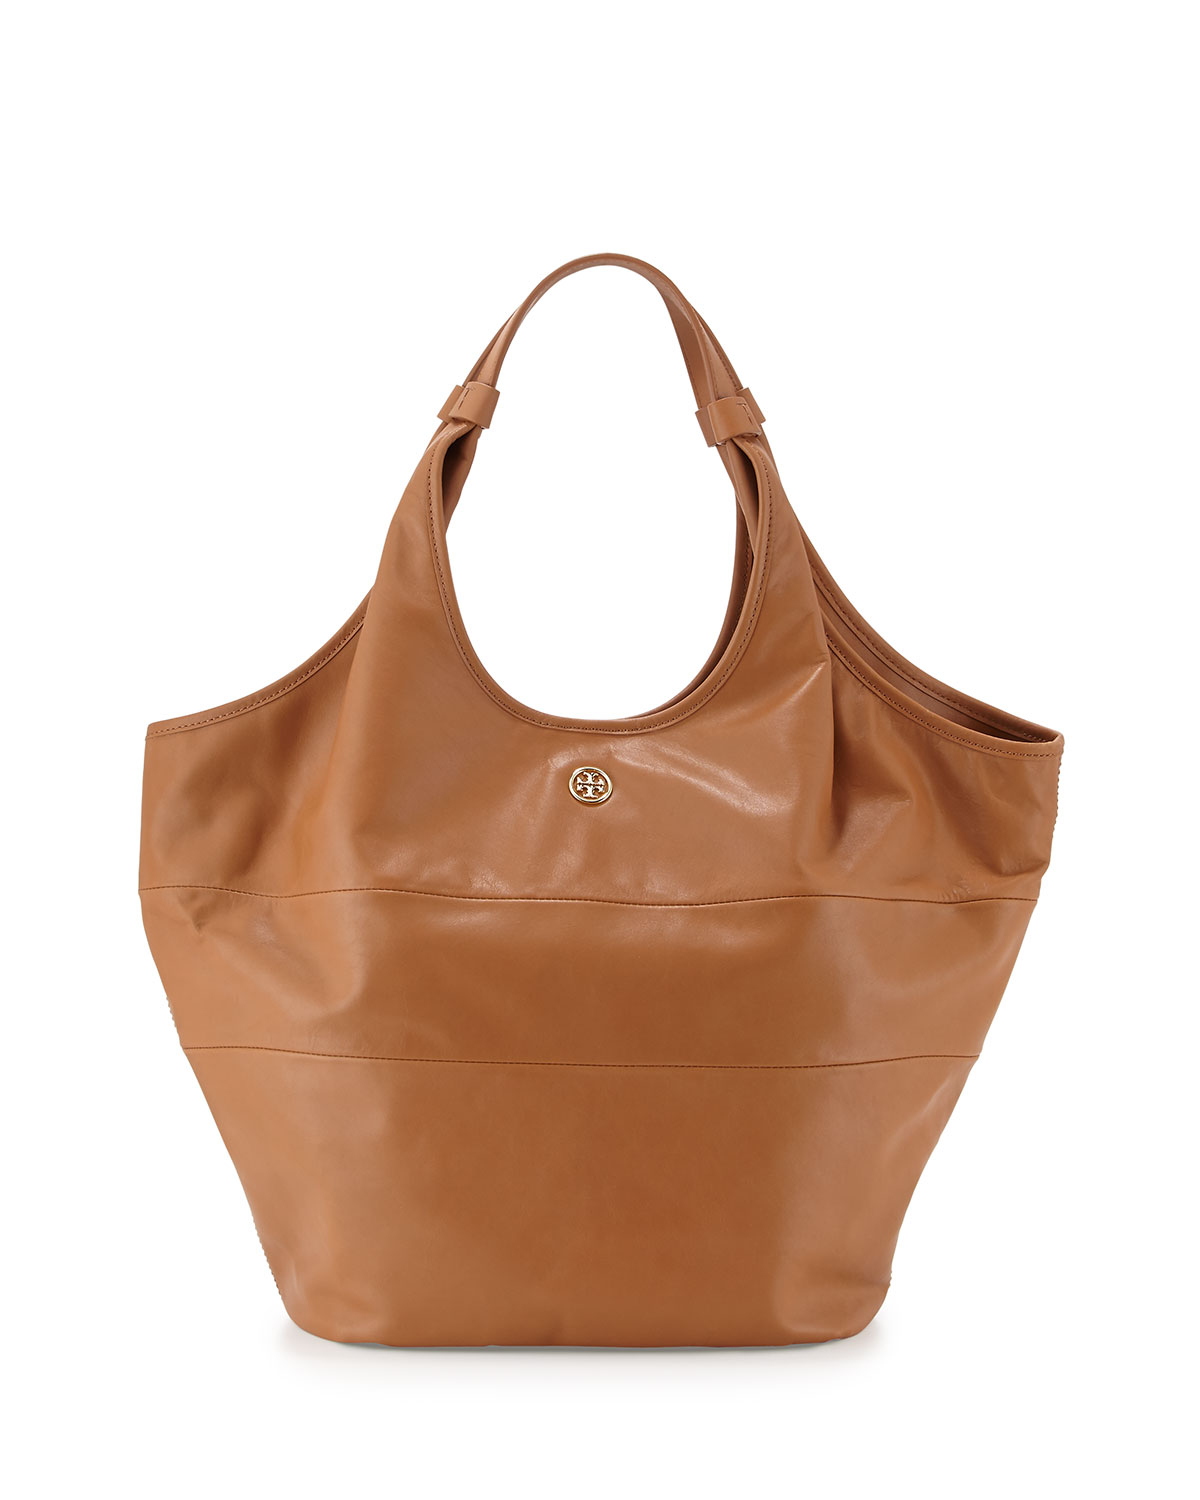 Tory burch Slouchy Leather Hobo Bag in Brown | Lyst